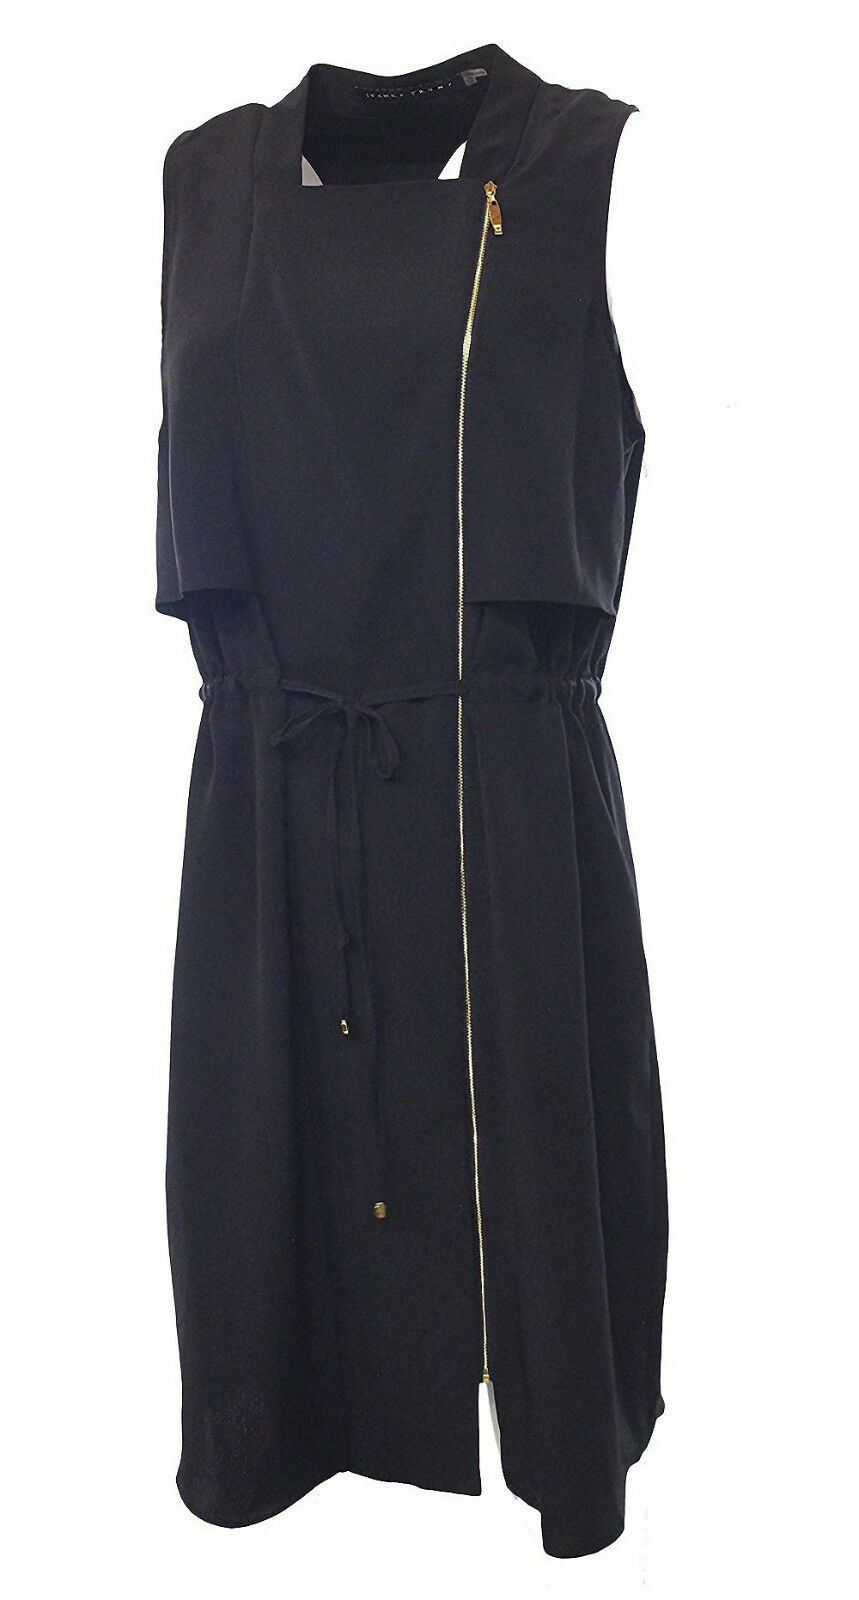 Ivanka Trump damen Sz 12 Sleeveless Zip Front Cocktail schwarz Dress 2089-3